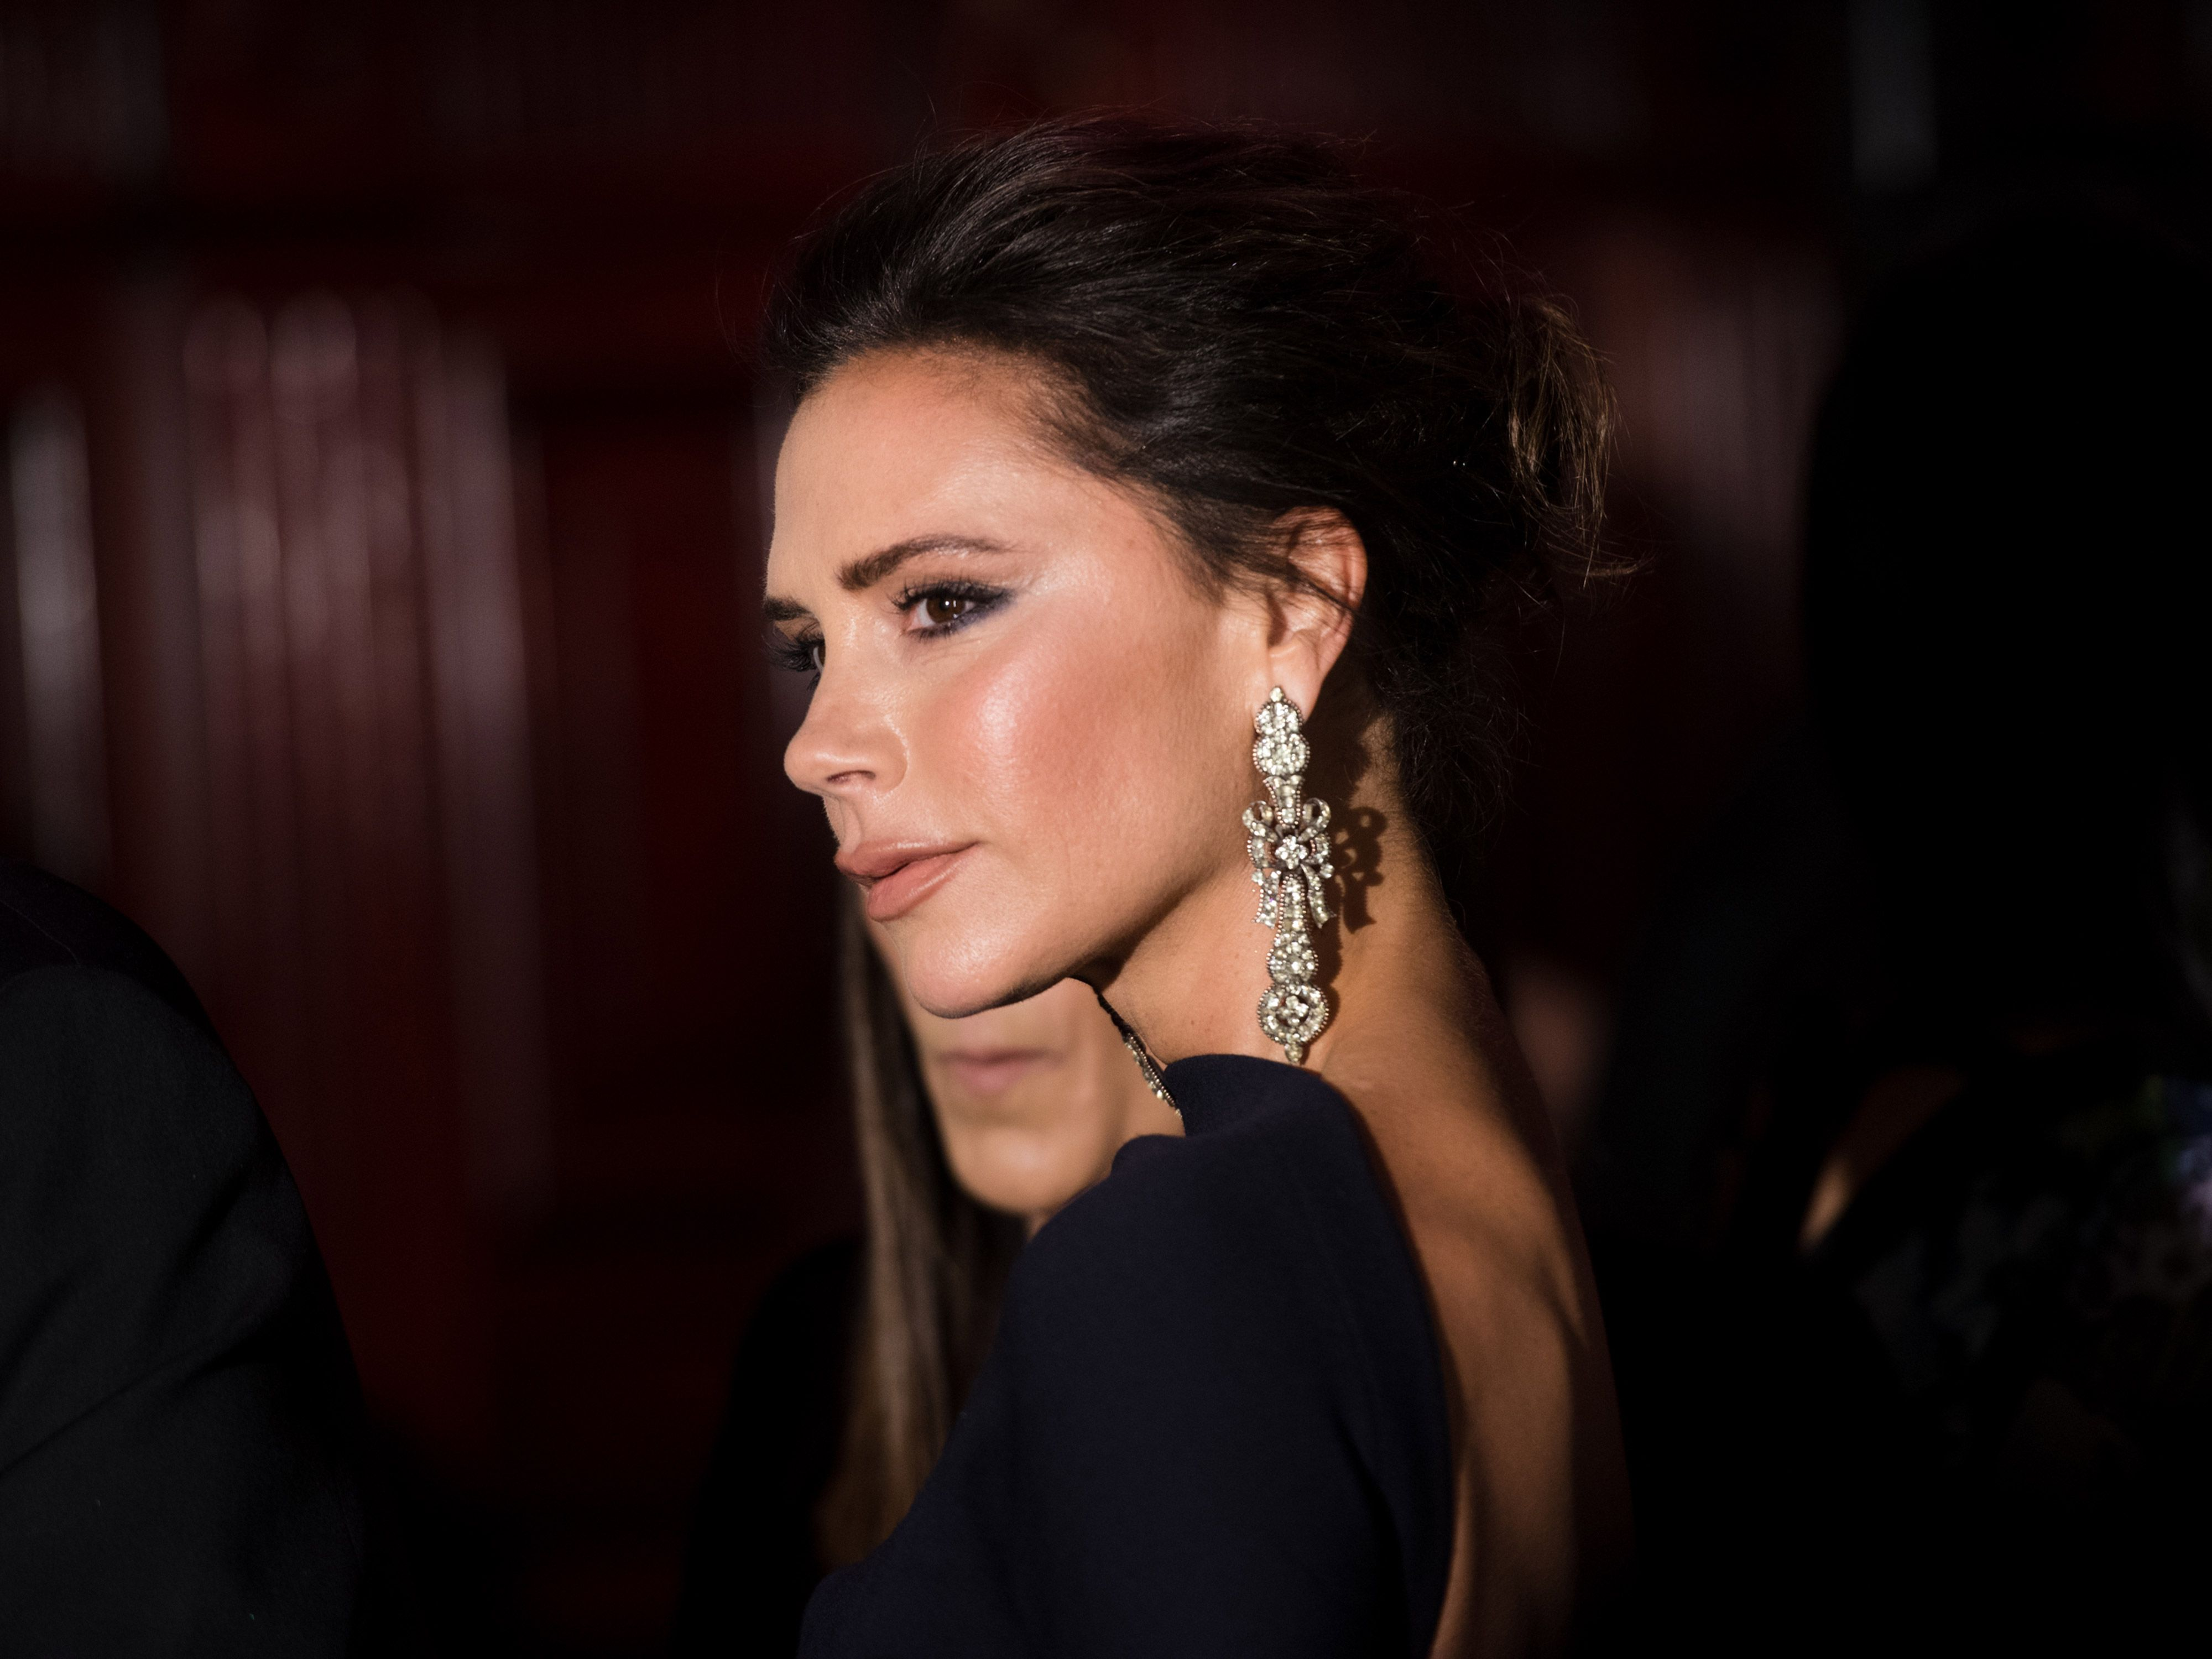 Victoria Beckham set to host charity fashion show